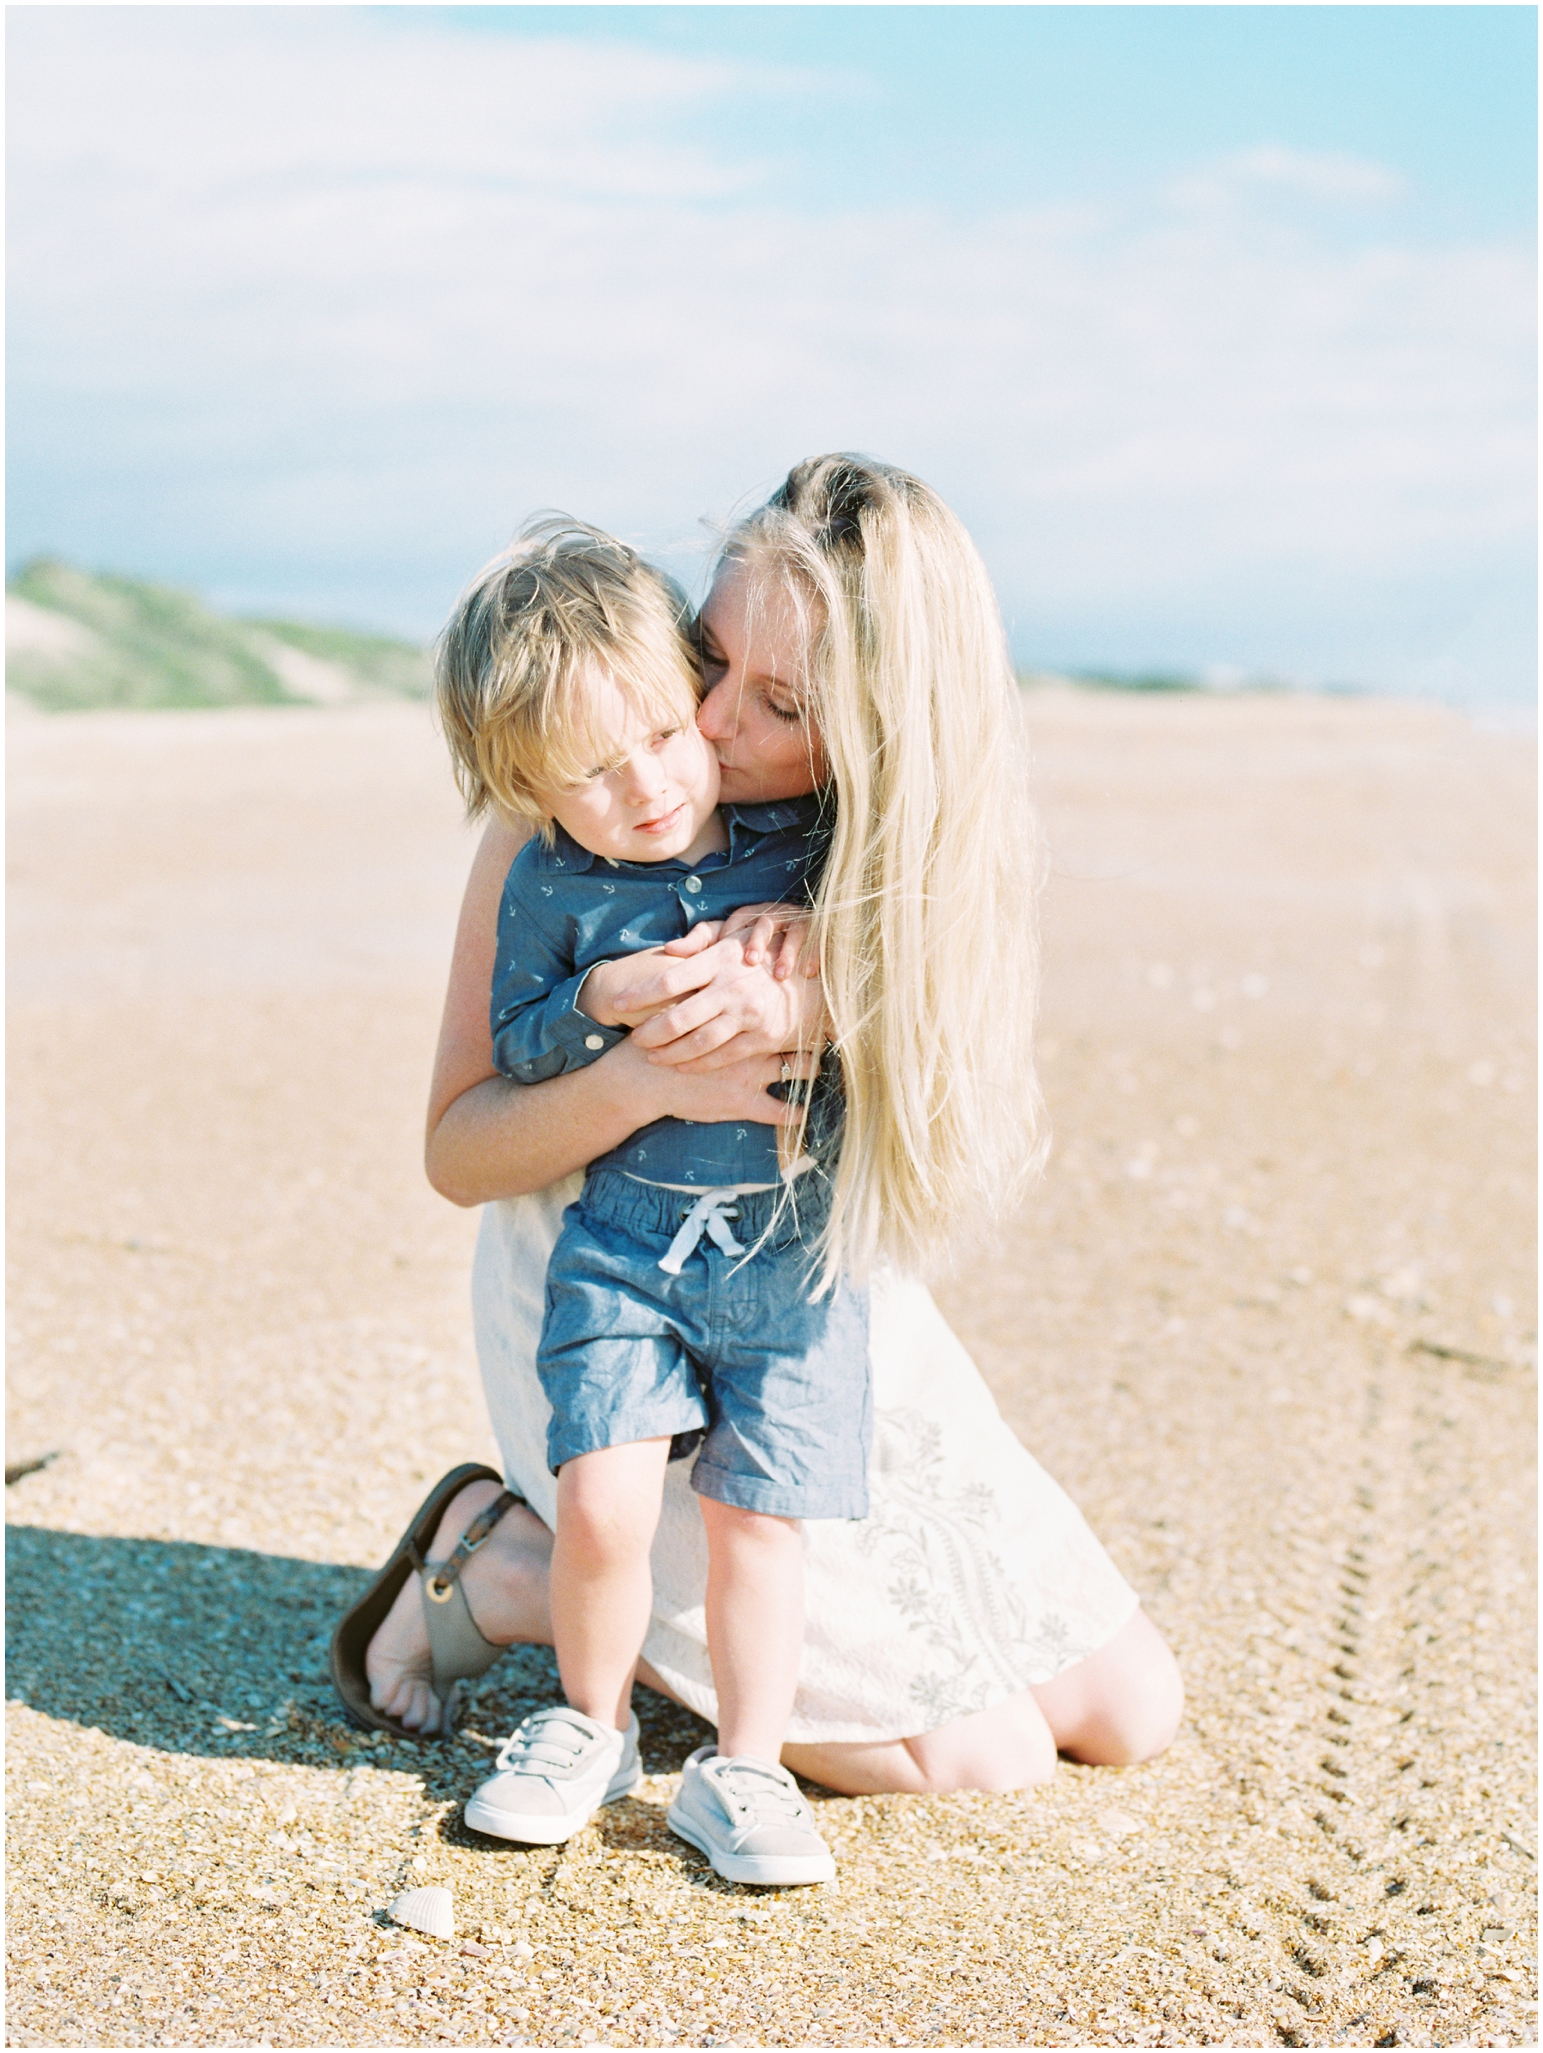 Lisa Silva Photography- Jacksonville, St. Augustine, Amelia Island, Ponte Vedra Beach, North East Florida Fine Art Film Photographer- Mommy and Me Lifestyle Session in Ponte Vedra Beach_0008.jpg